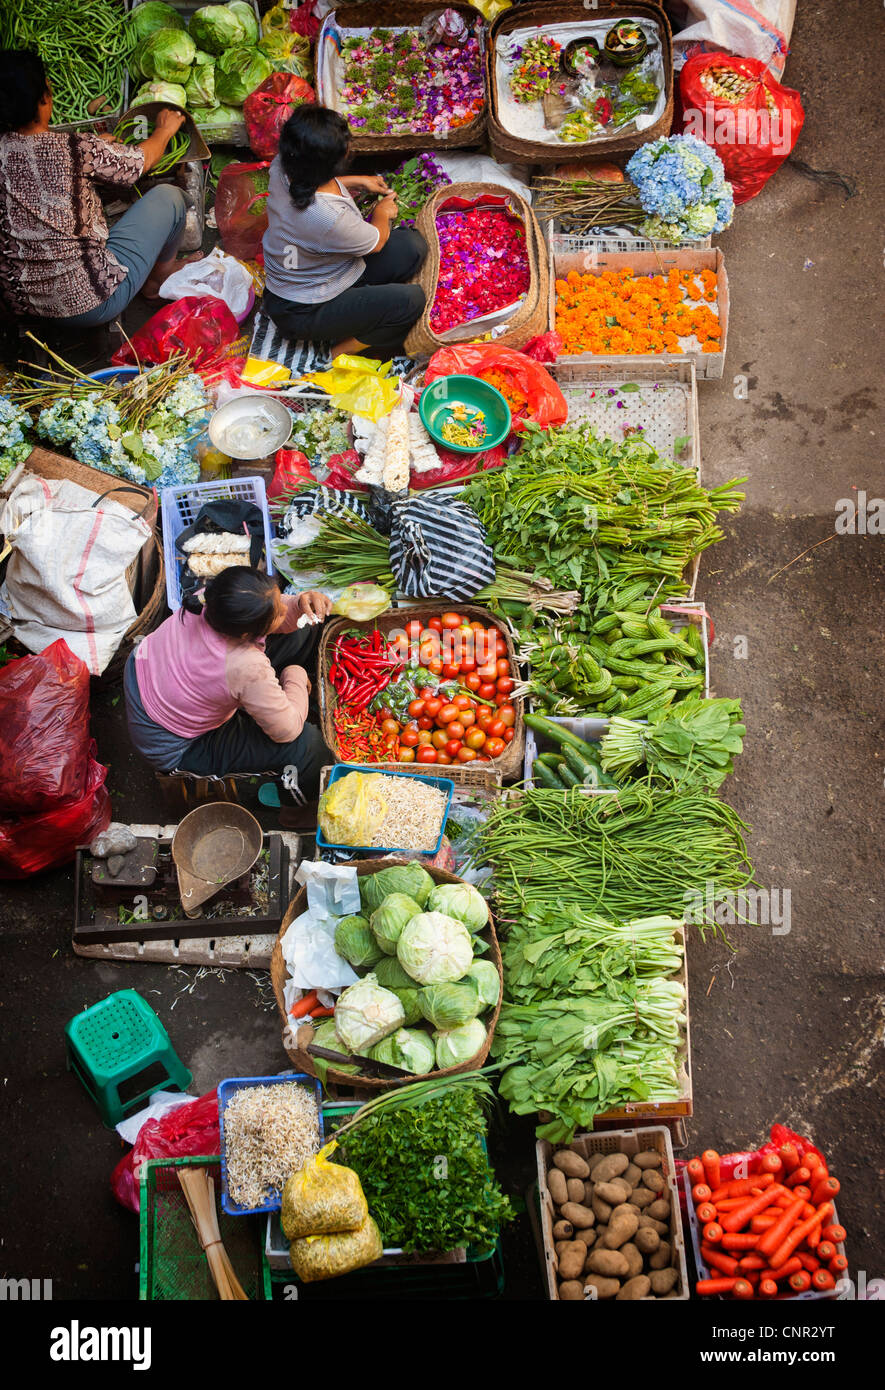 Early every morning fruit and vegetable sellers gather at the Ubud, Bali public market located on the main street, - Stock Image